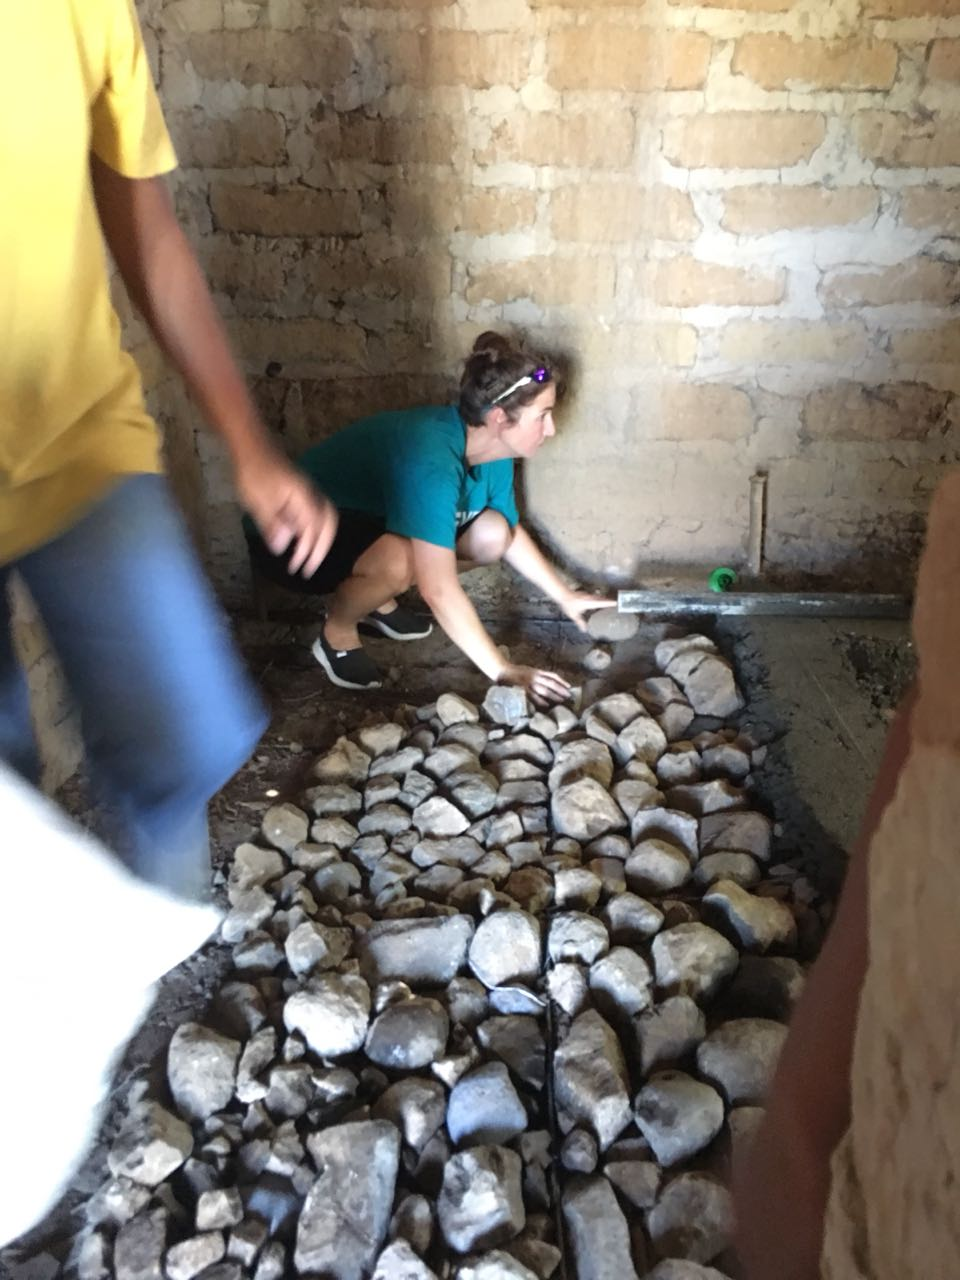 Part of the Connect Global August team focus was to pour brand new concrete floors for families in need.